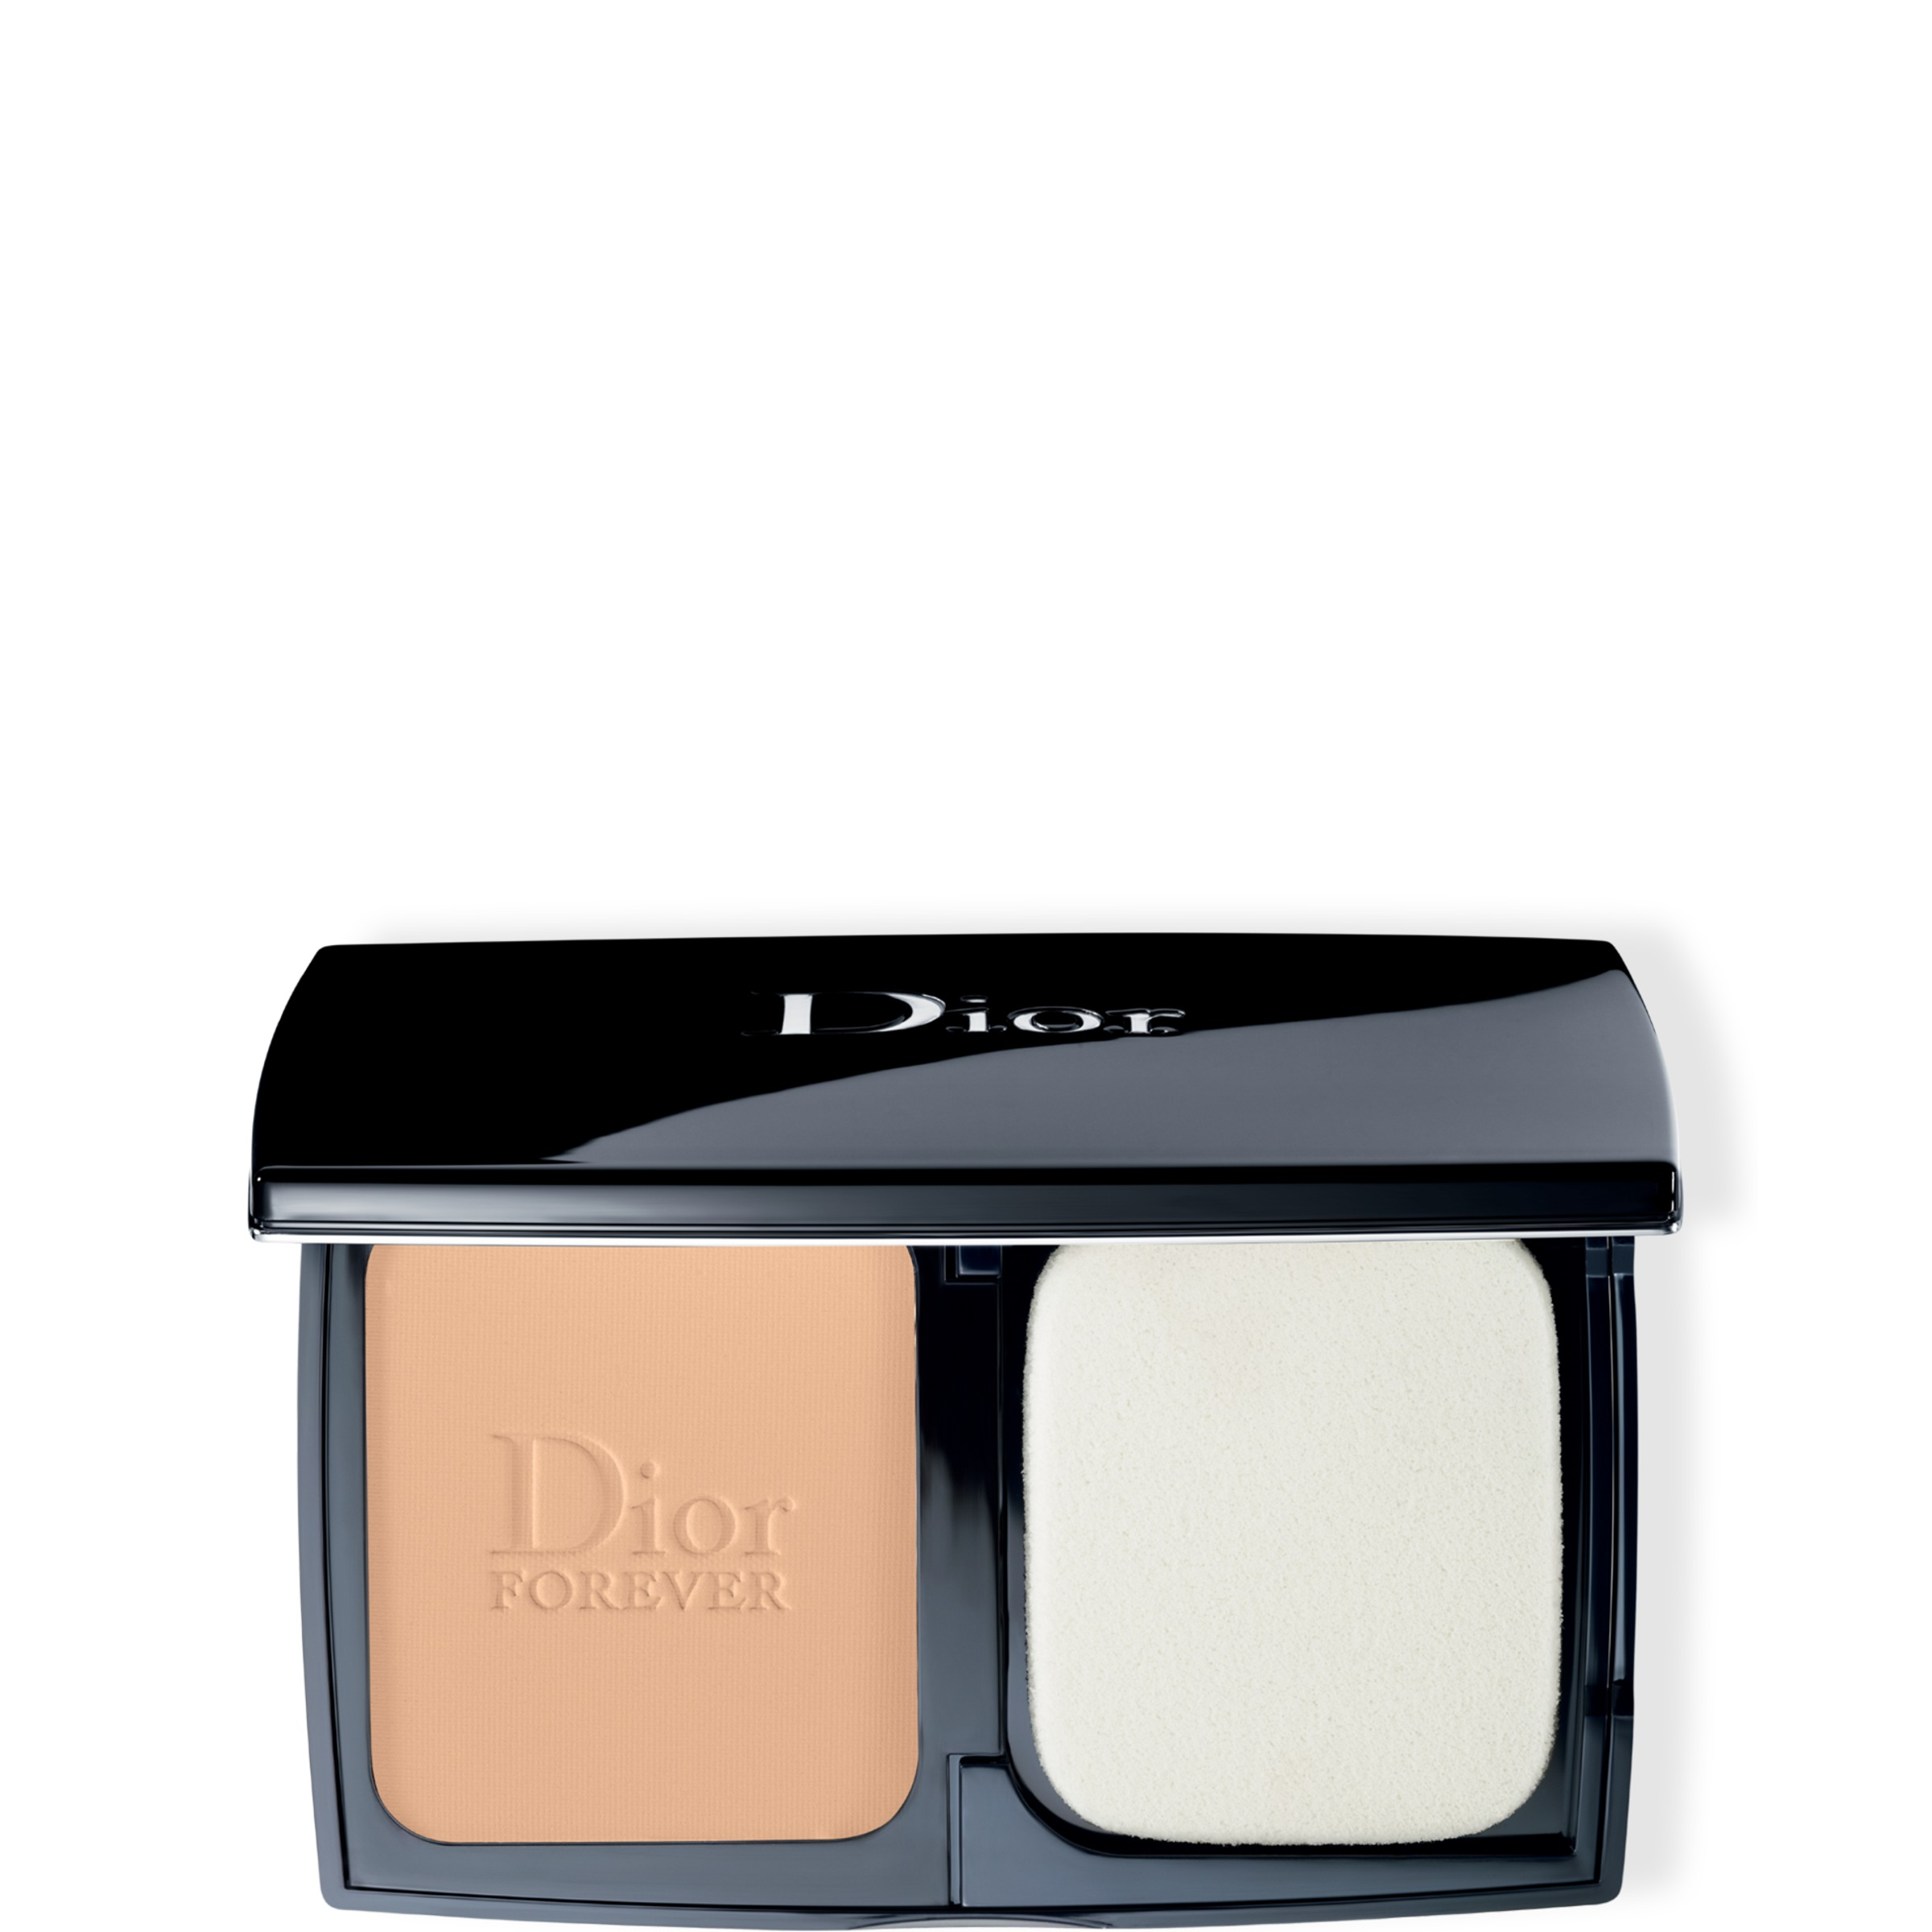 Diorskin Forever Foundation Compact 020 Light Beige